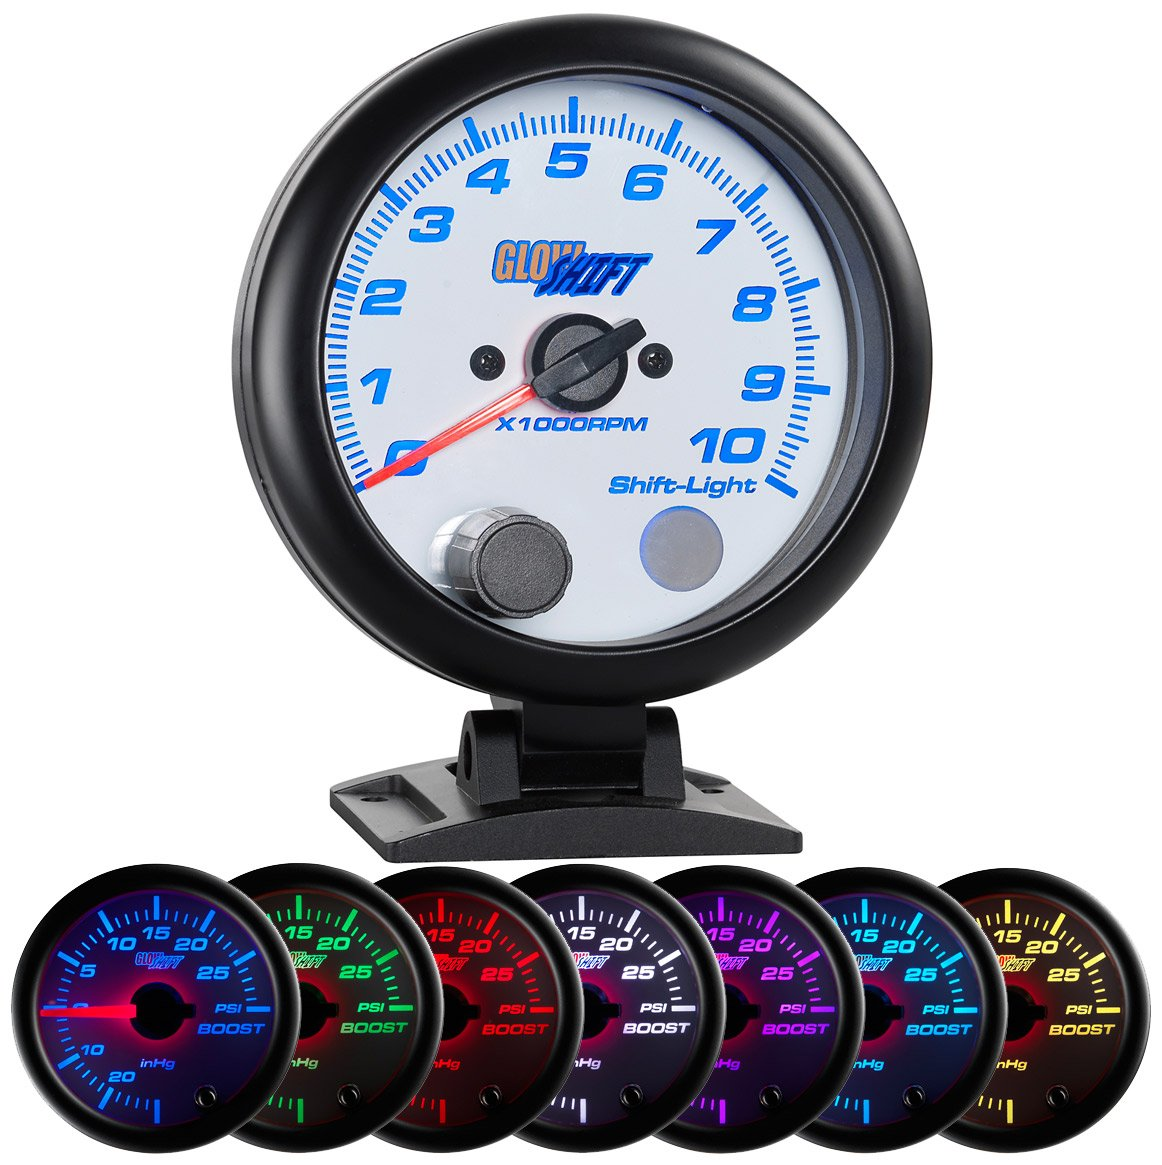 GlowShift White 7 Color 10, 000 RPM Tachometer Gauge - For 1-10 Cylinder Gas Powered Engines - Built-In Shift Light - Mounts On Dashboard - White Dial - Clear Lens - 3-3/4' 95mm GlowShift Gauges GS-W709-SM